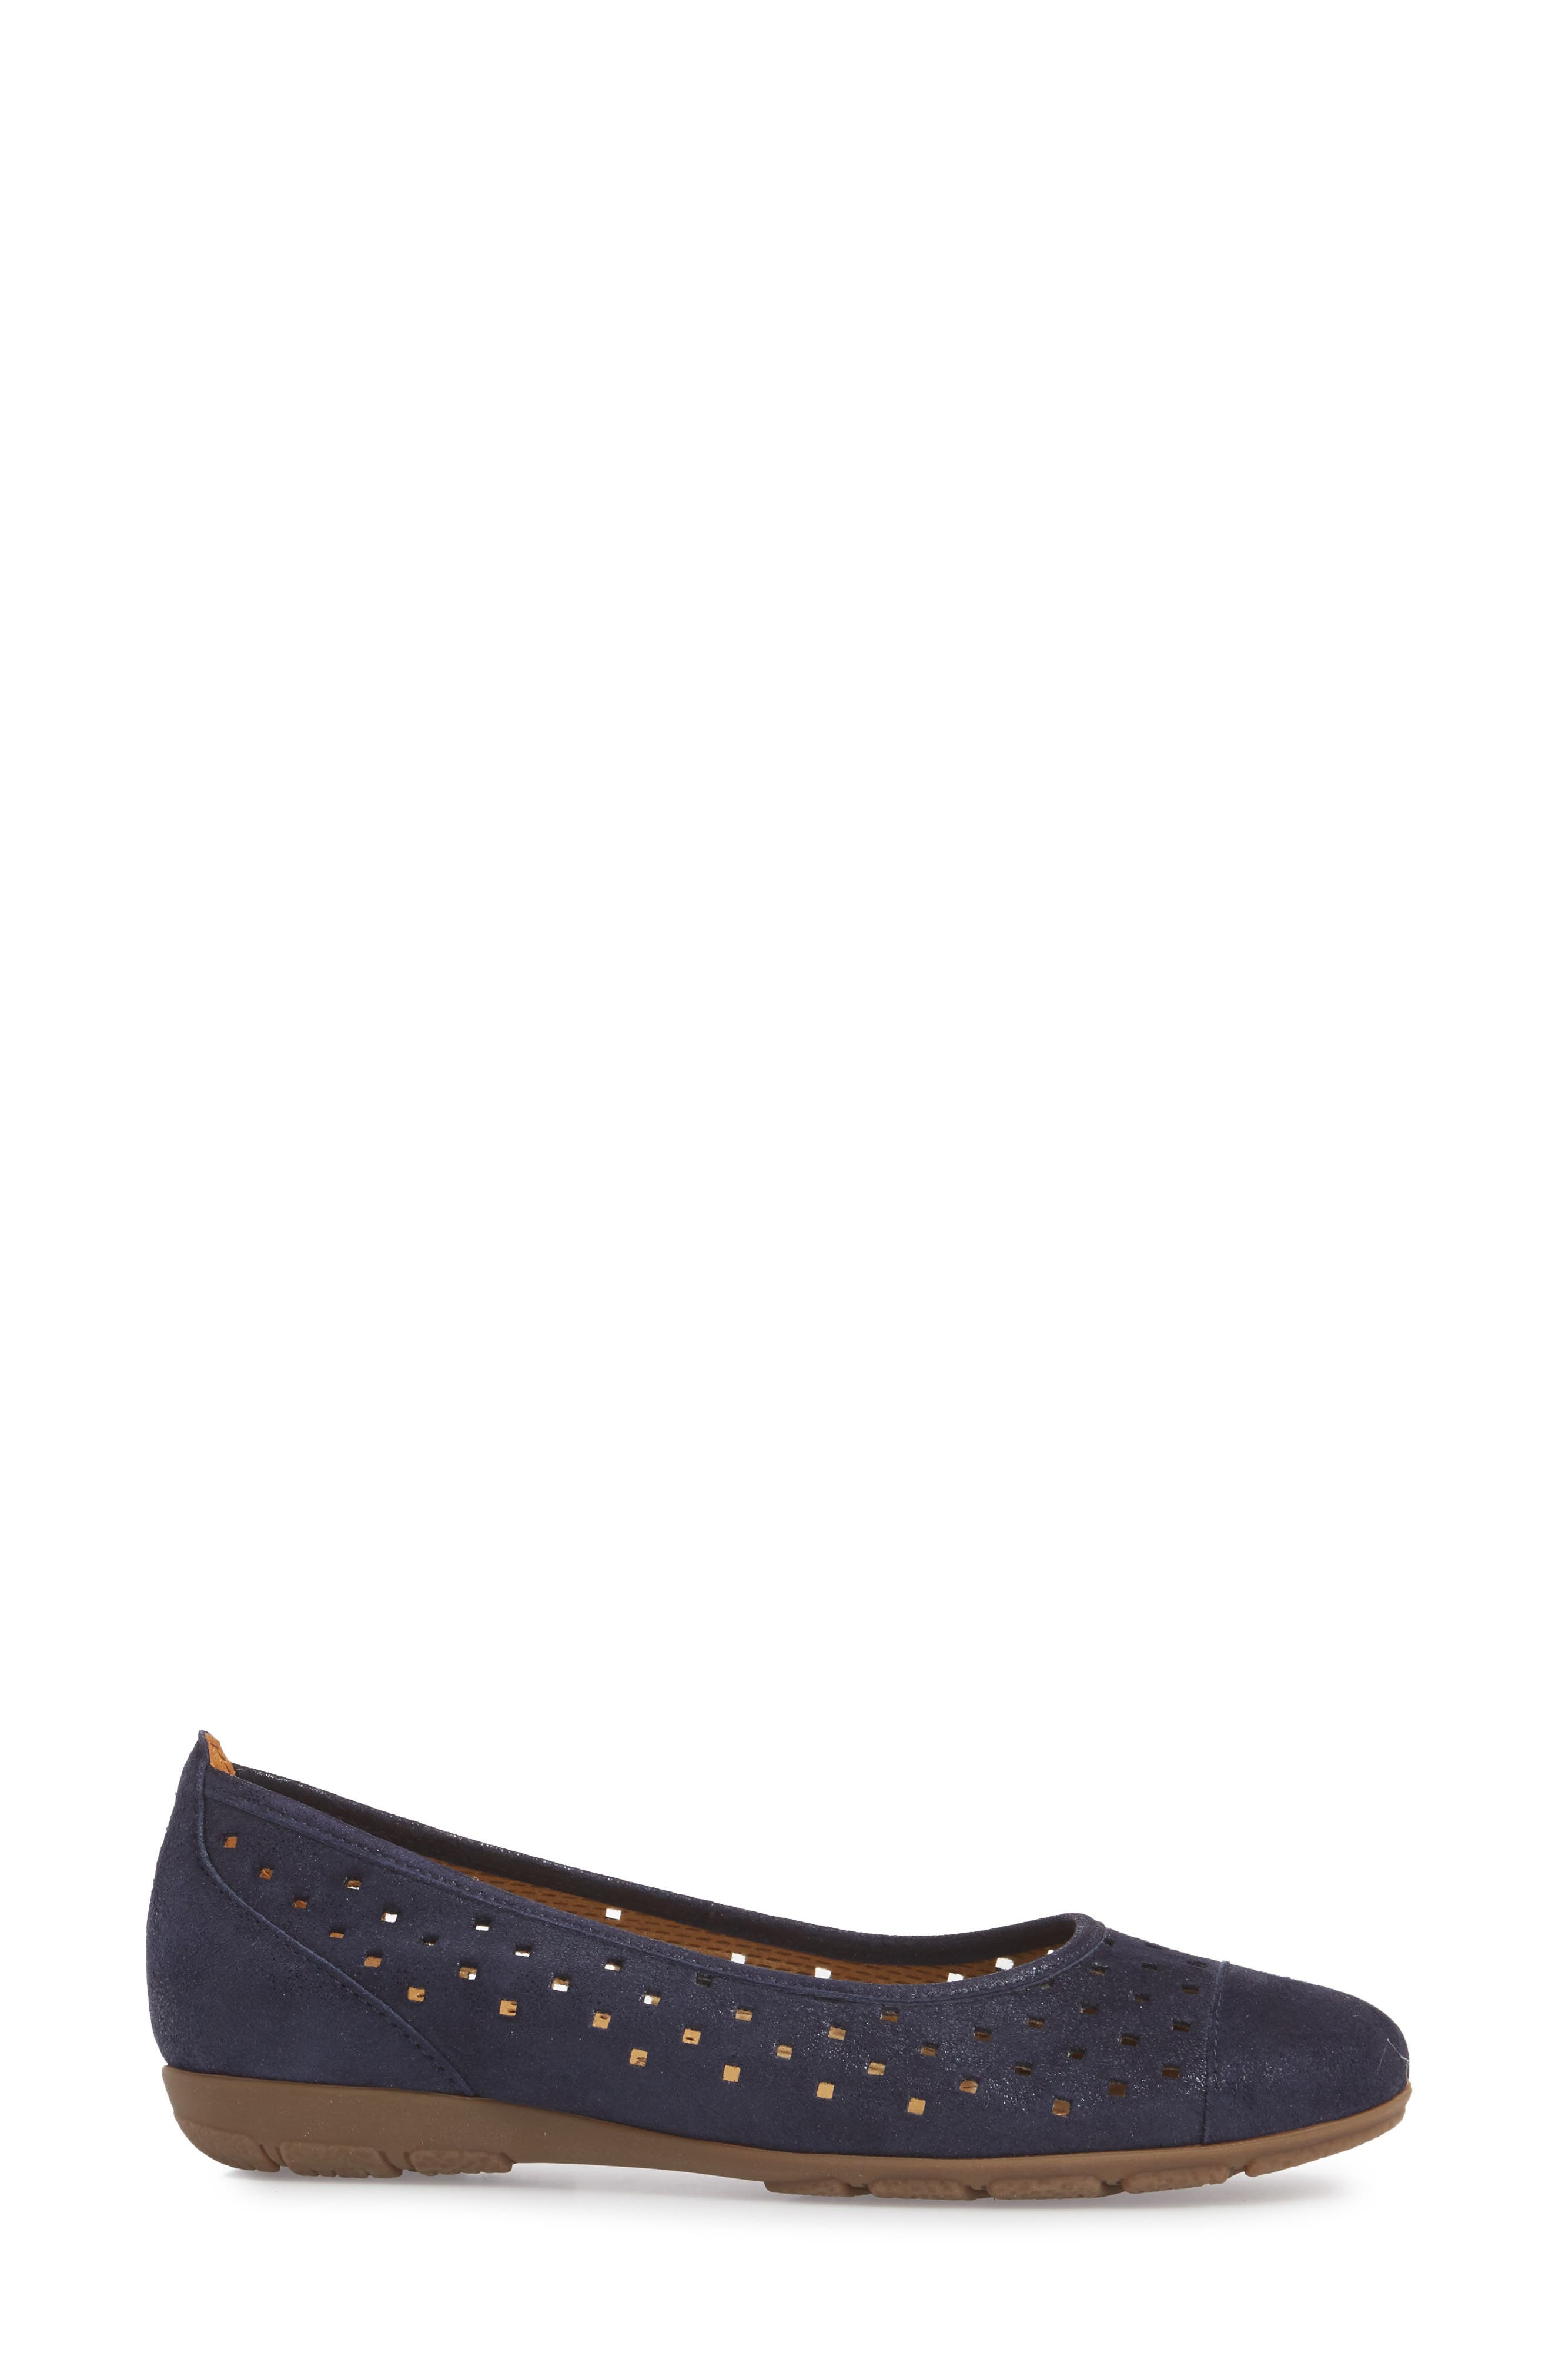 Perforated Ballet Flat,                             Alternate thumbnail 3, color,                             Blue Metallic Leather